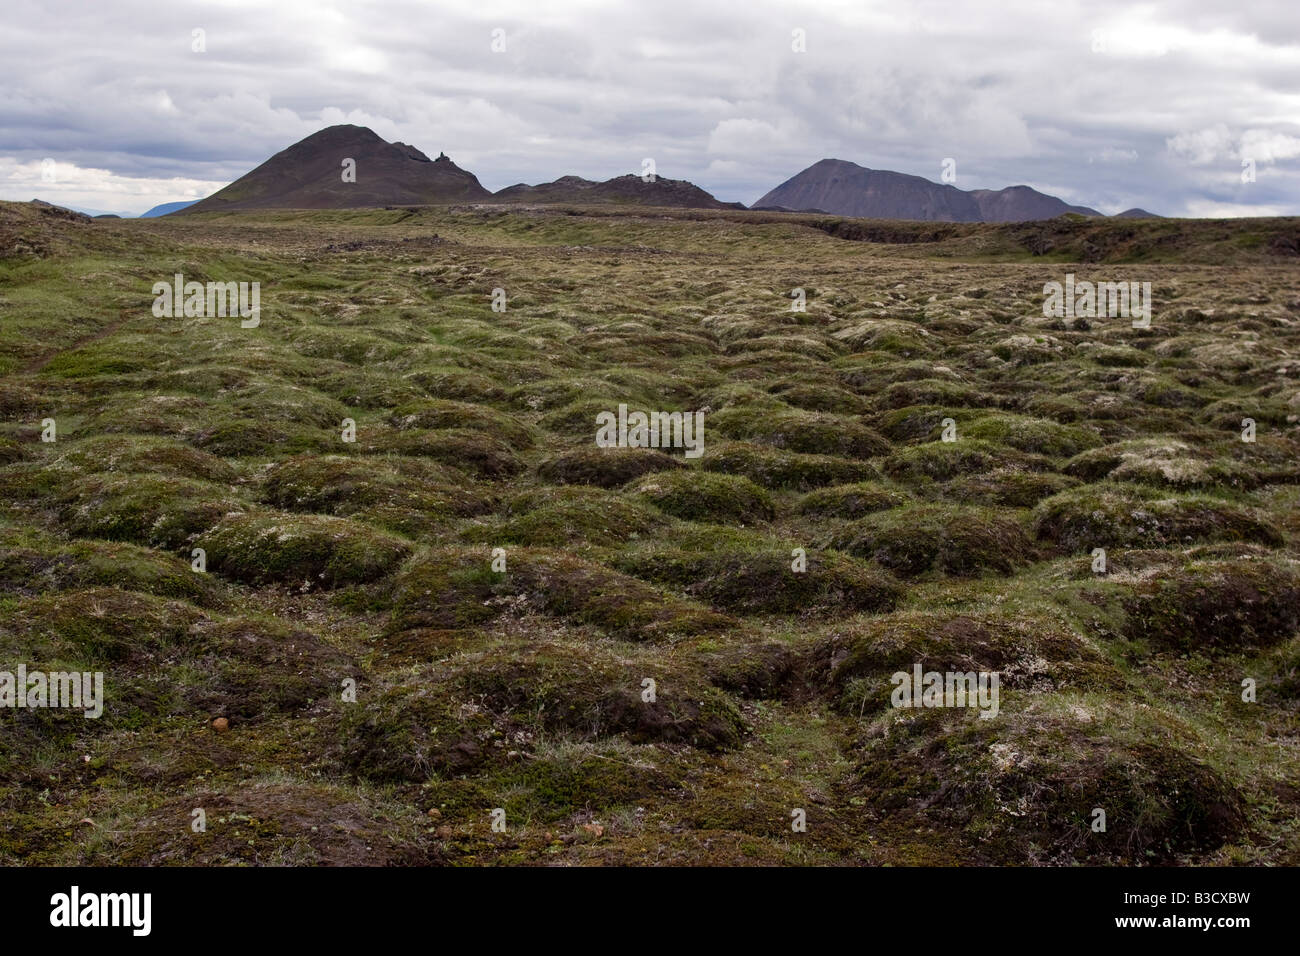 Lava field in the area of Krafla, Myvatn lake, Iceland. - Stock Image